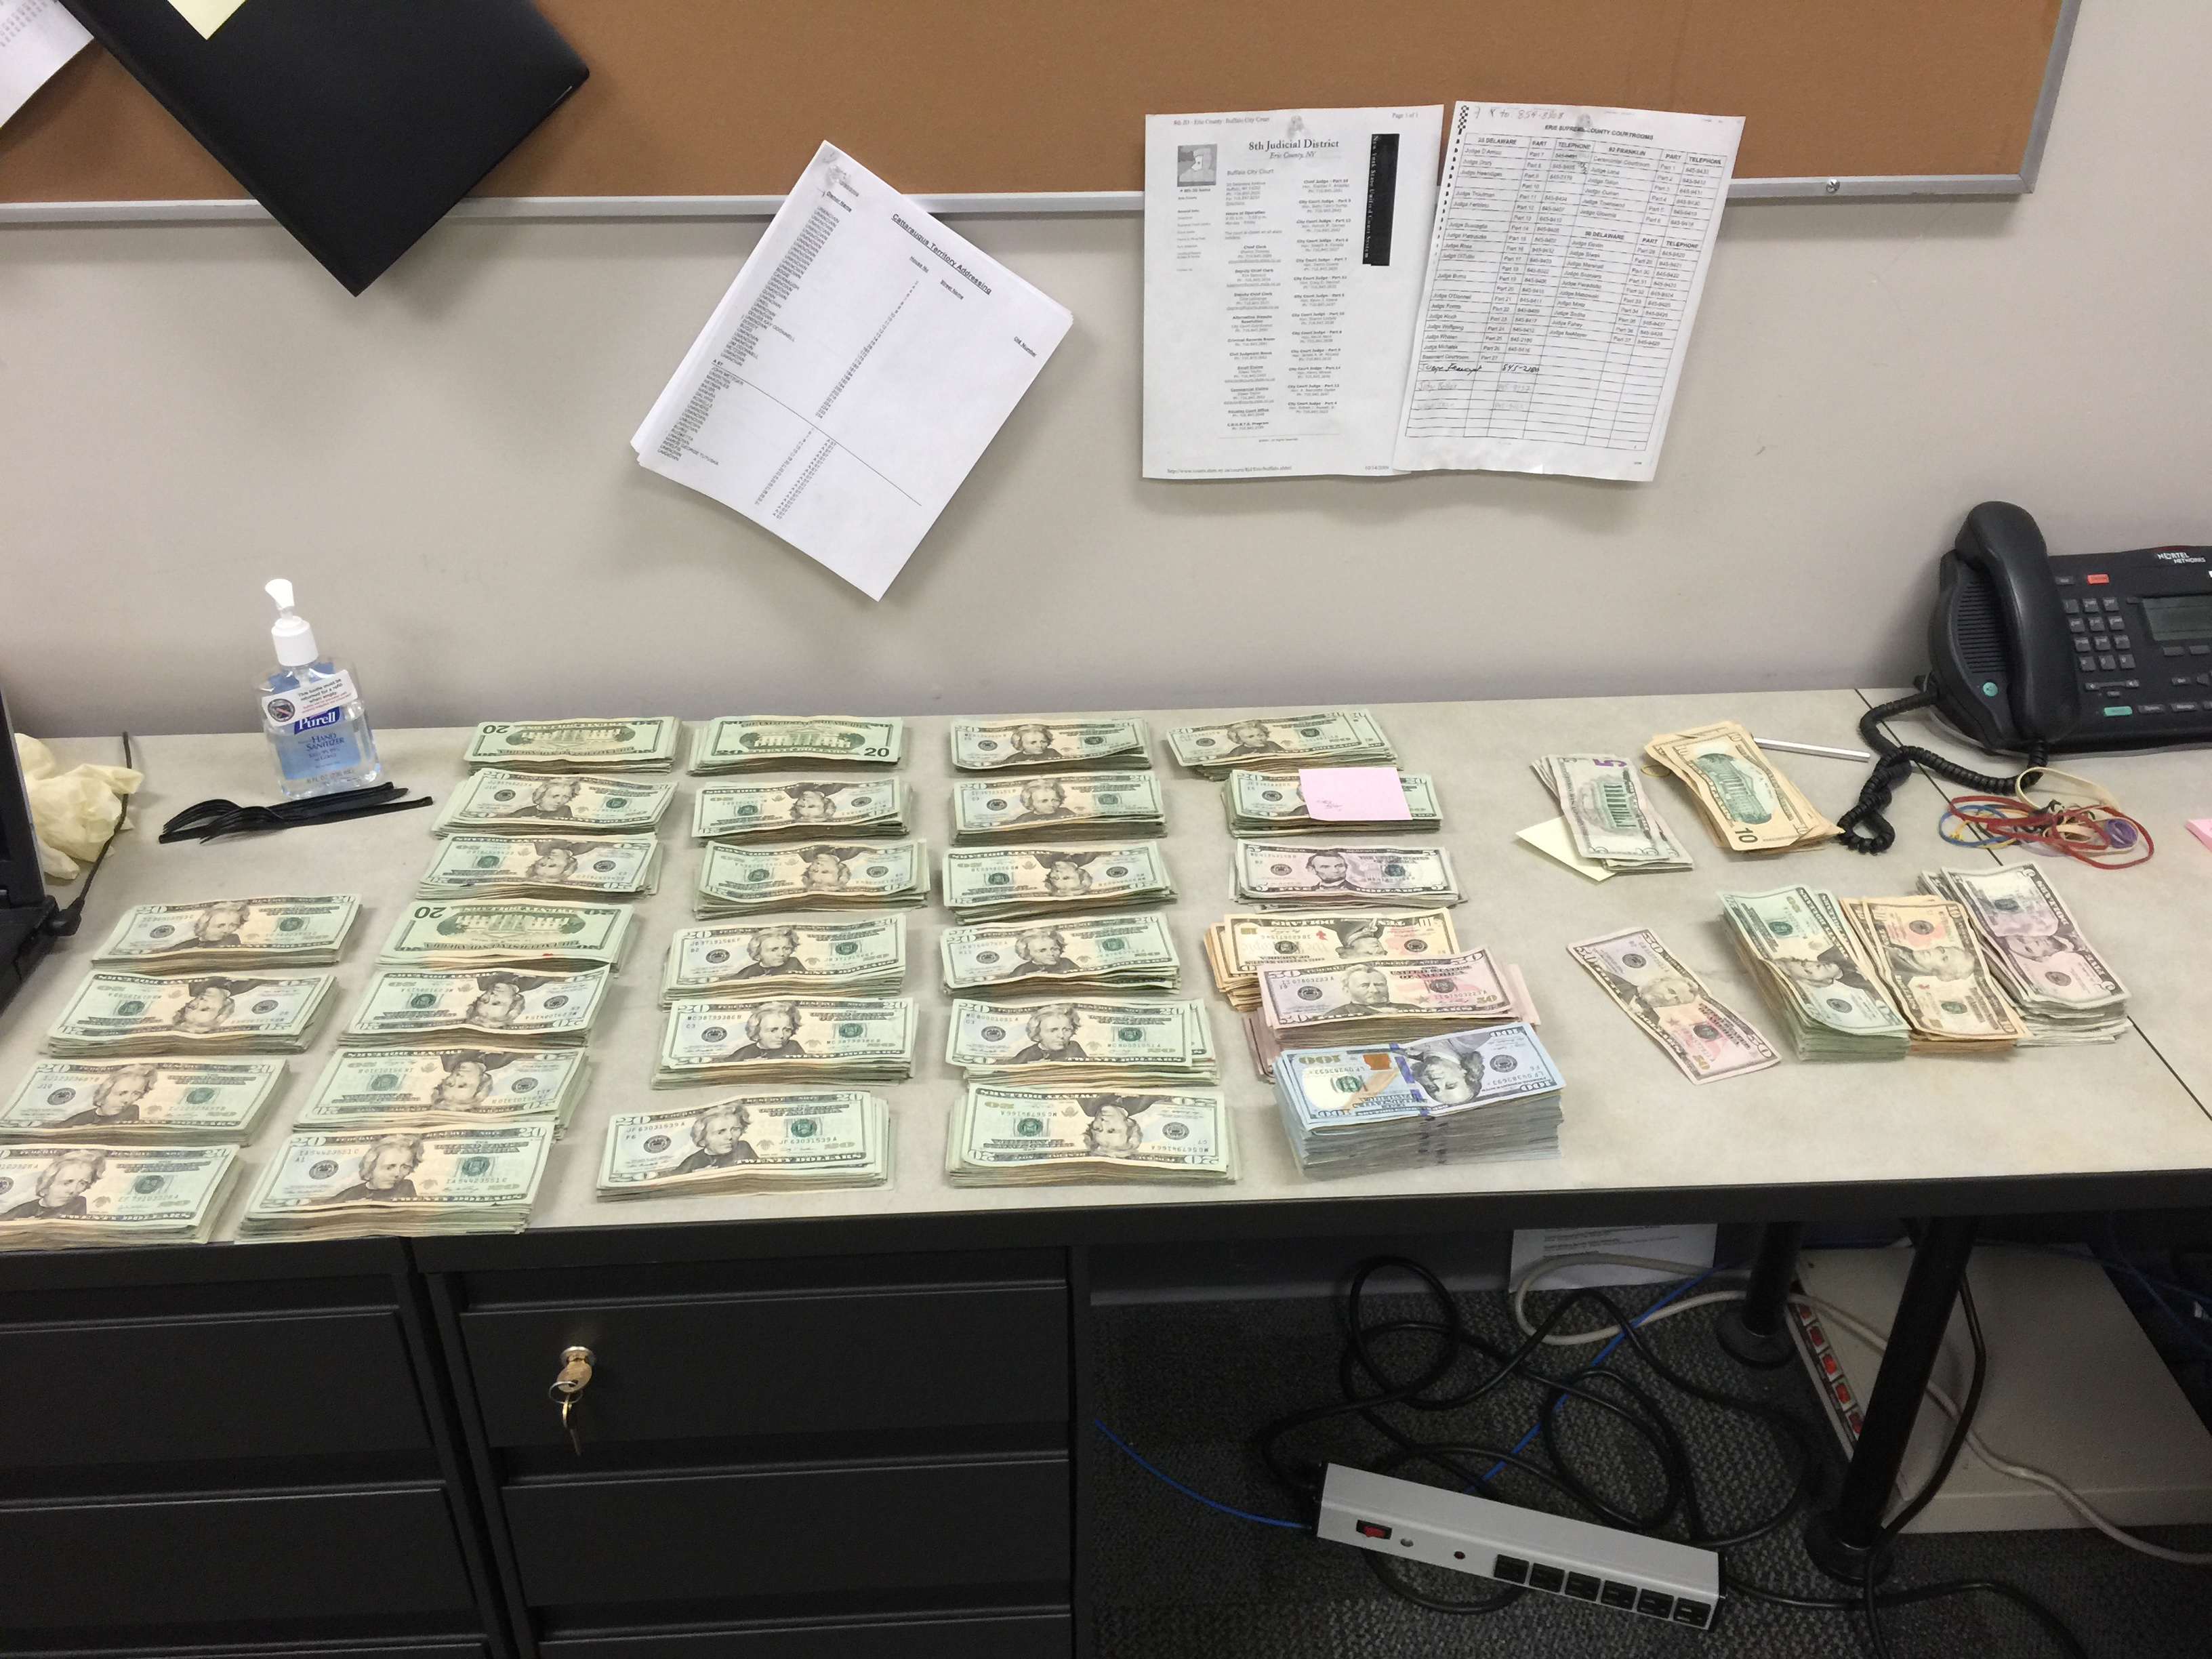 Authorities seized five pounds of suspected cocaine and nearly $50,000 in cash after a search of the home and vehicle of Tyrone Pennick, of Amherst, who is already facing federal drug distribution charges. (Erie County Sheriff's Office)